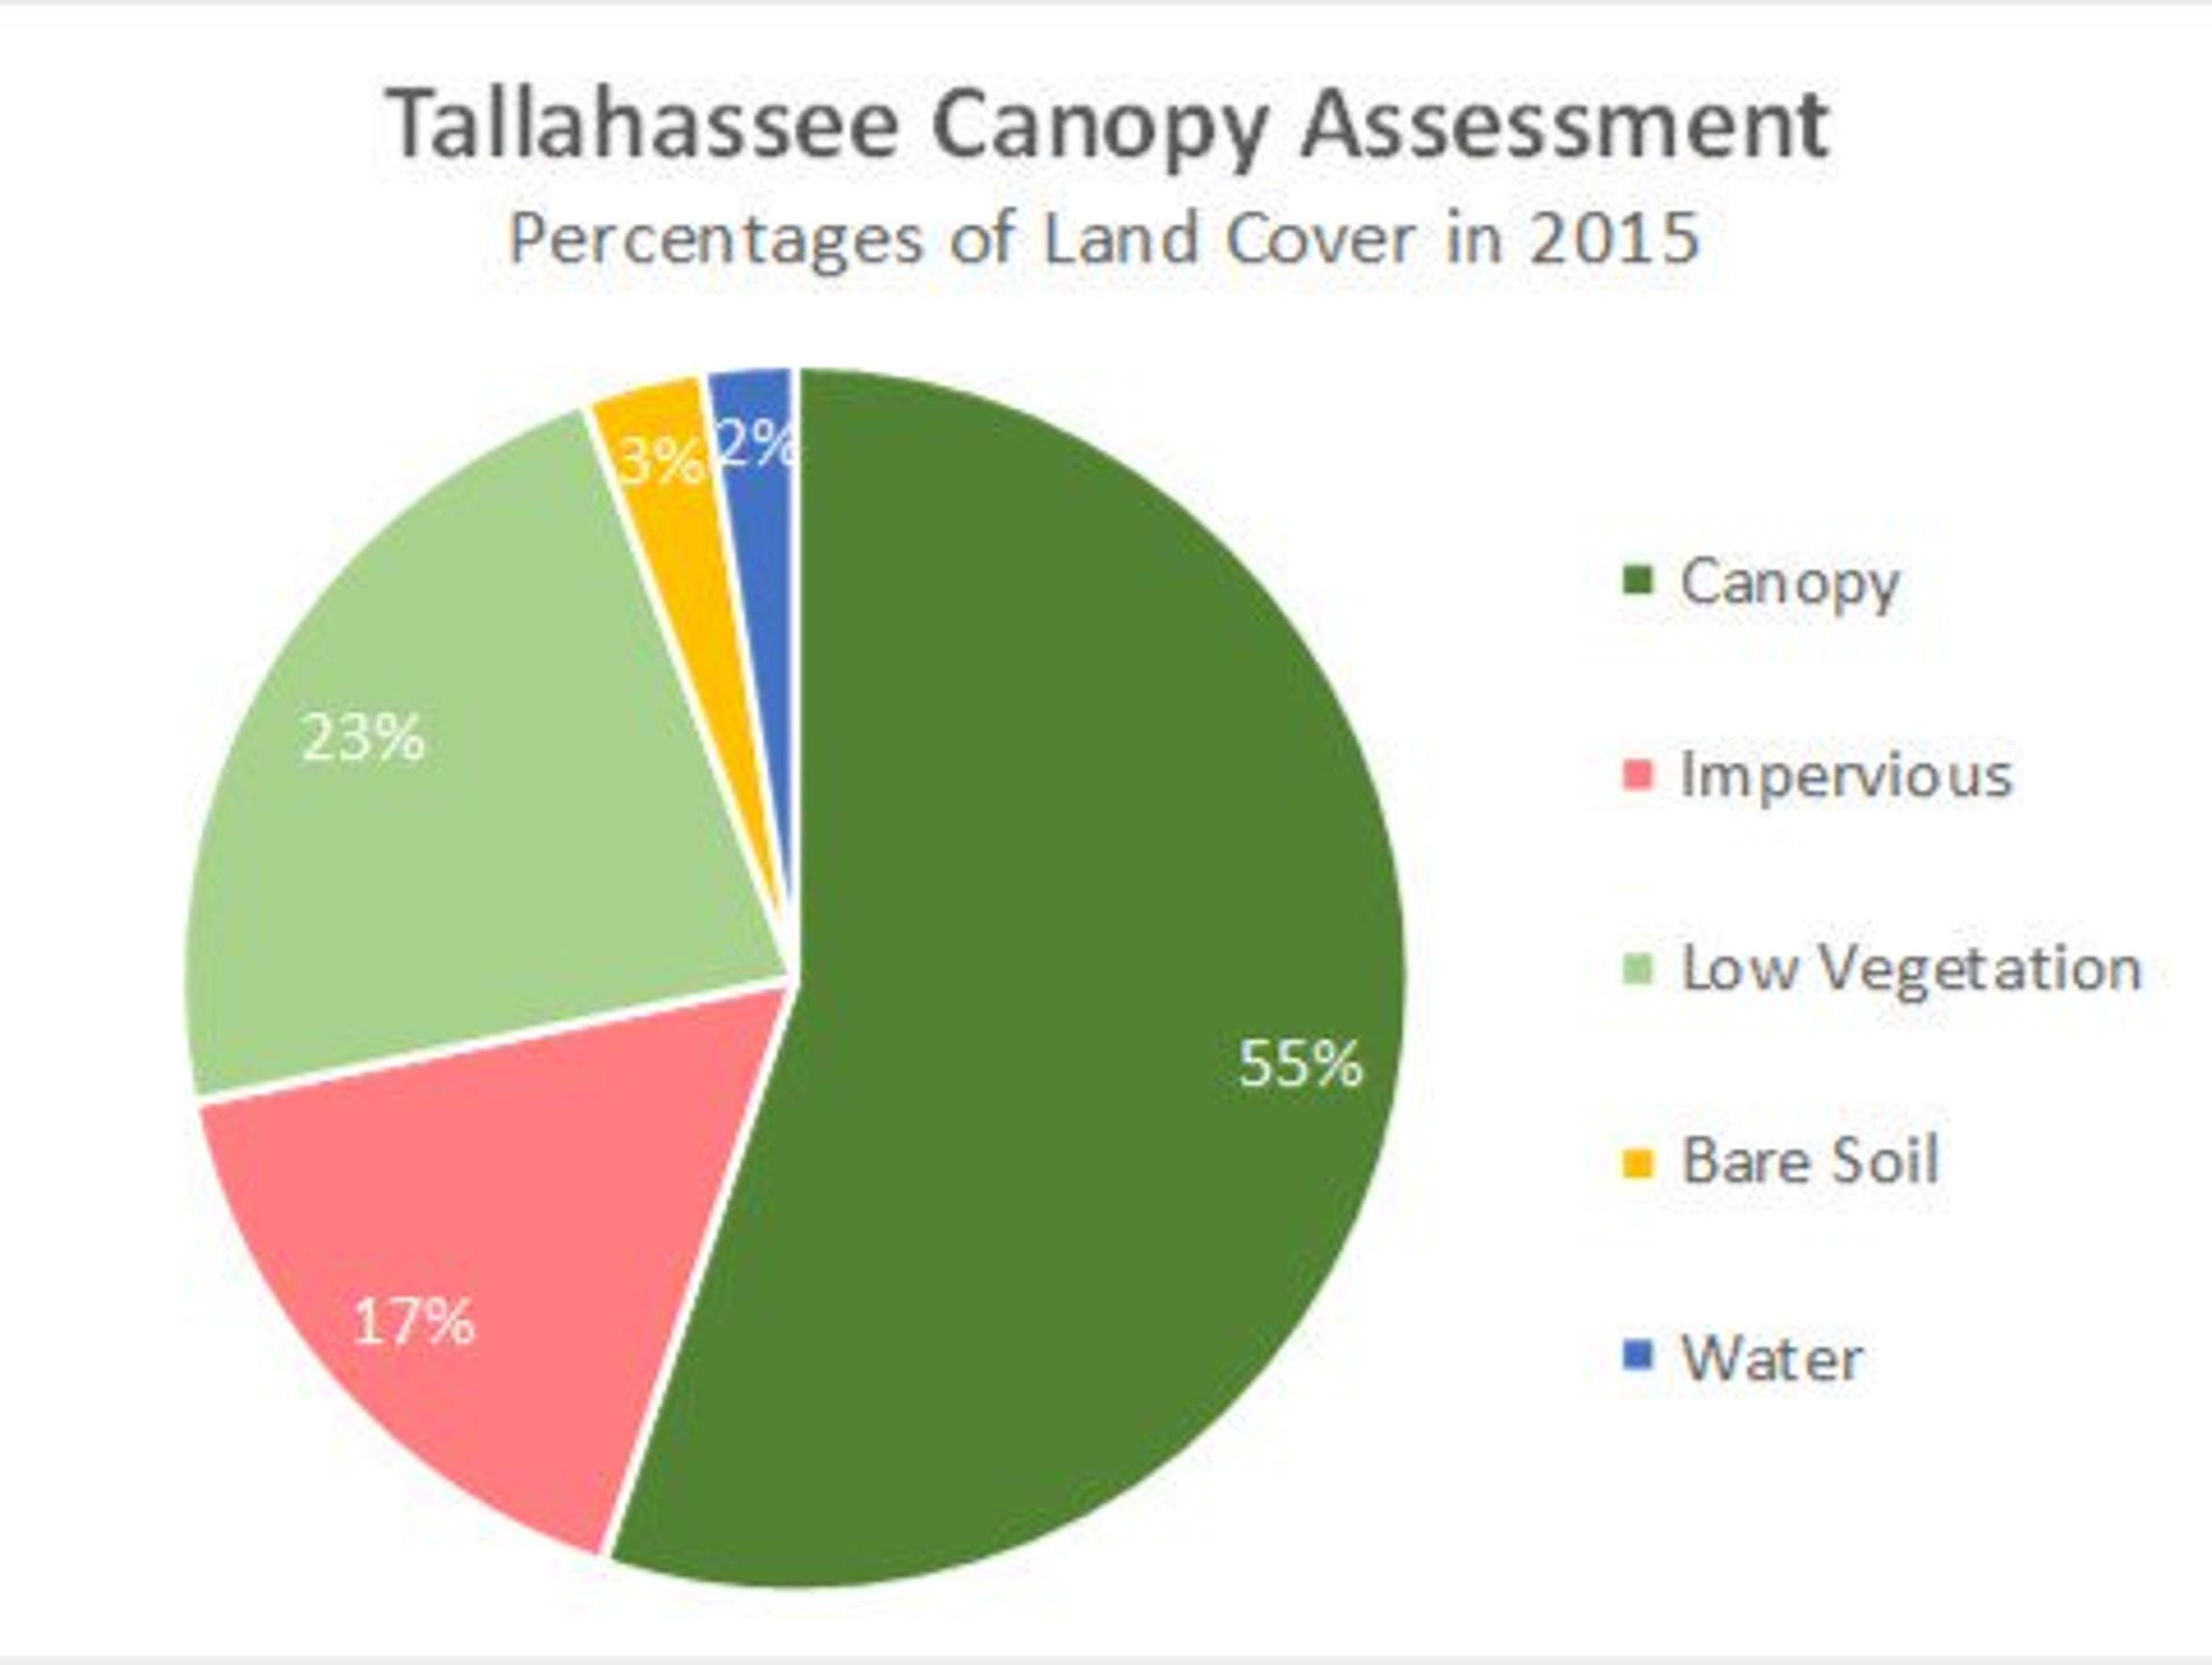 Here is how much of Tallahassee is shadowed by canopy,